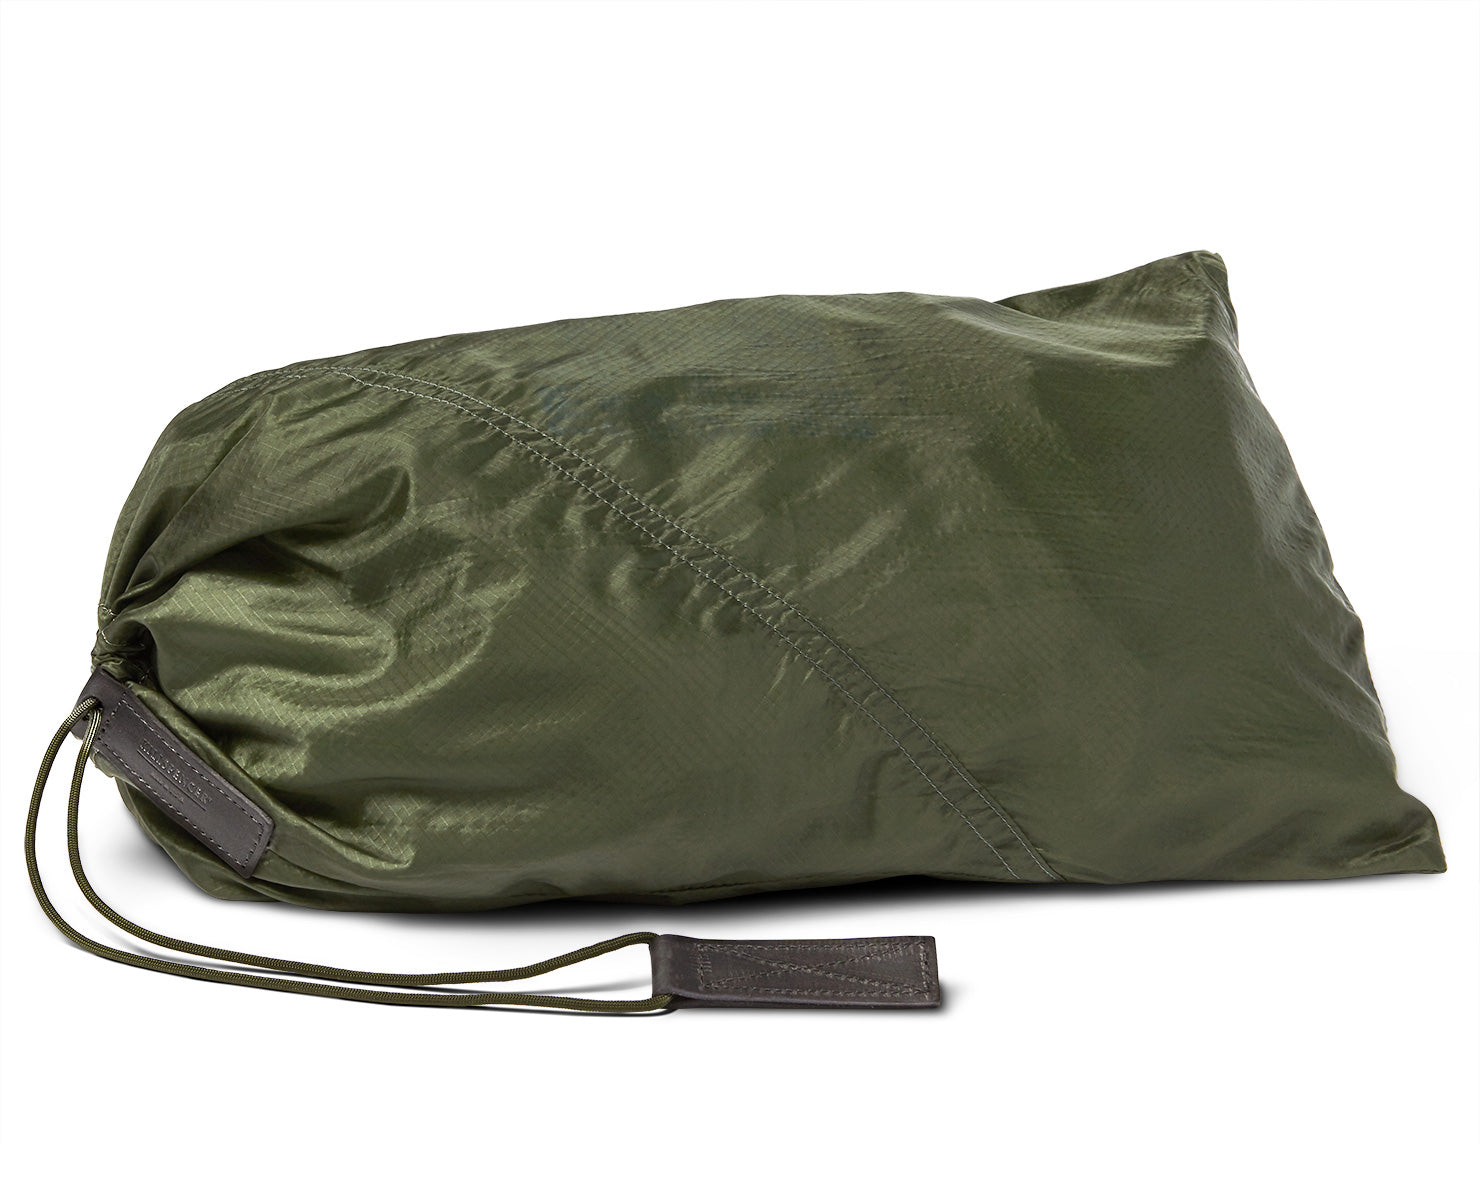 PARACHUTE BAG 2.0 - Shoe Bag | KILLSPENCER® - Olive Drab Parachute